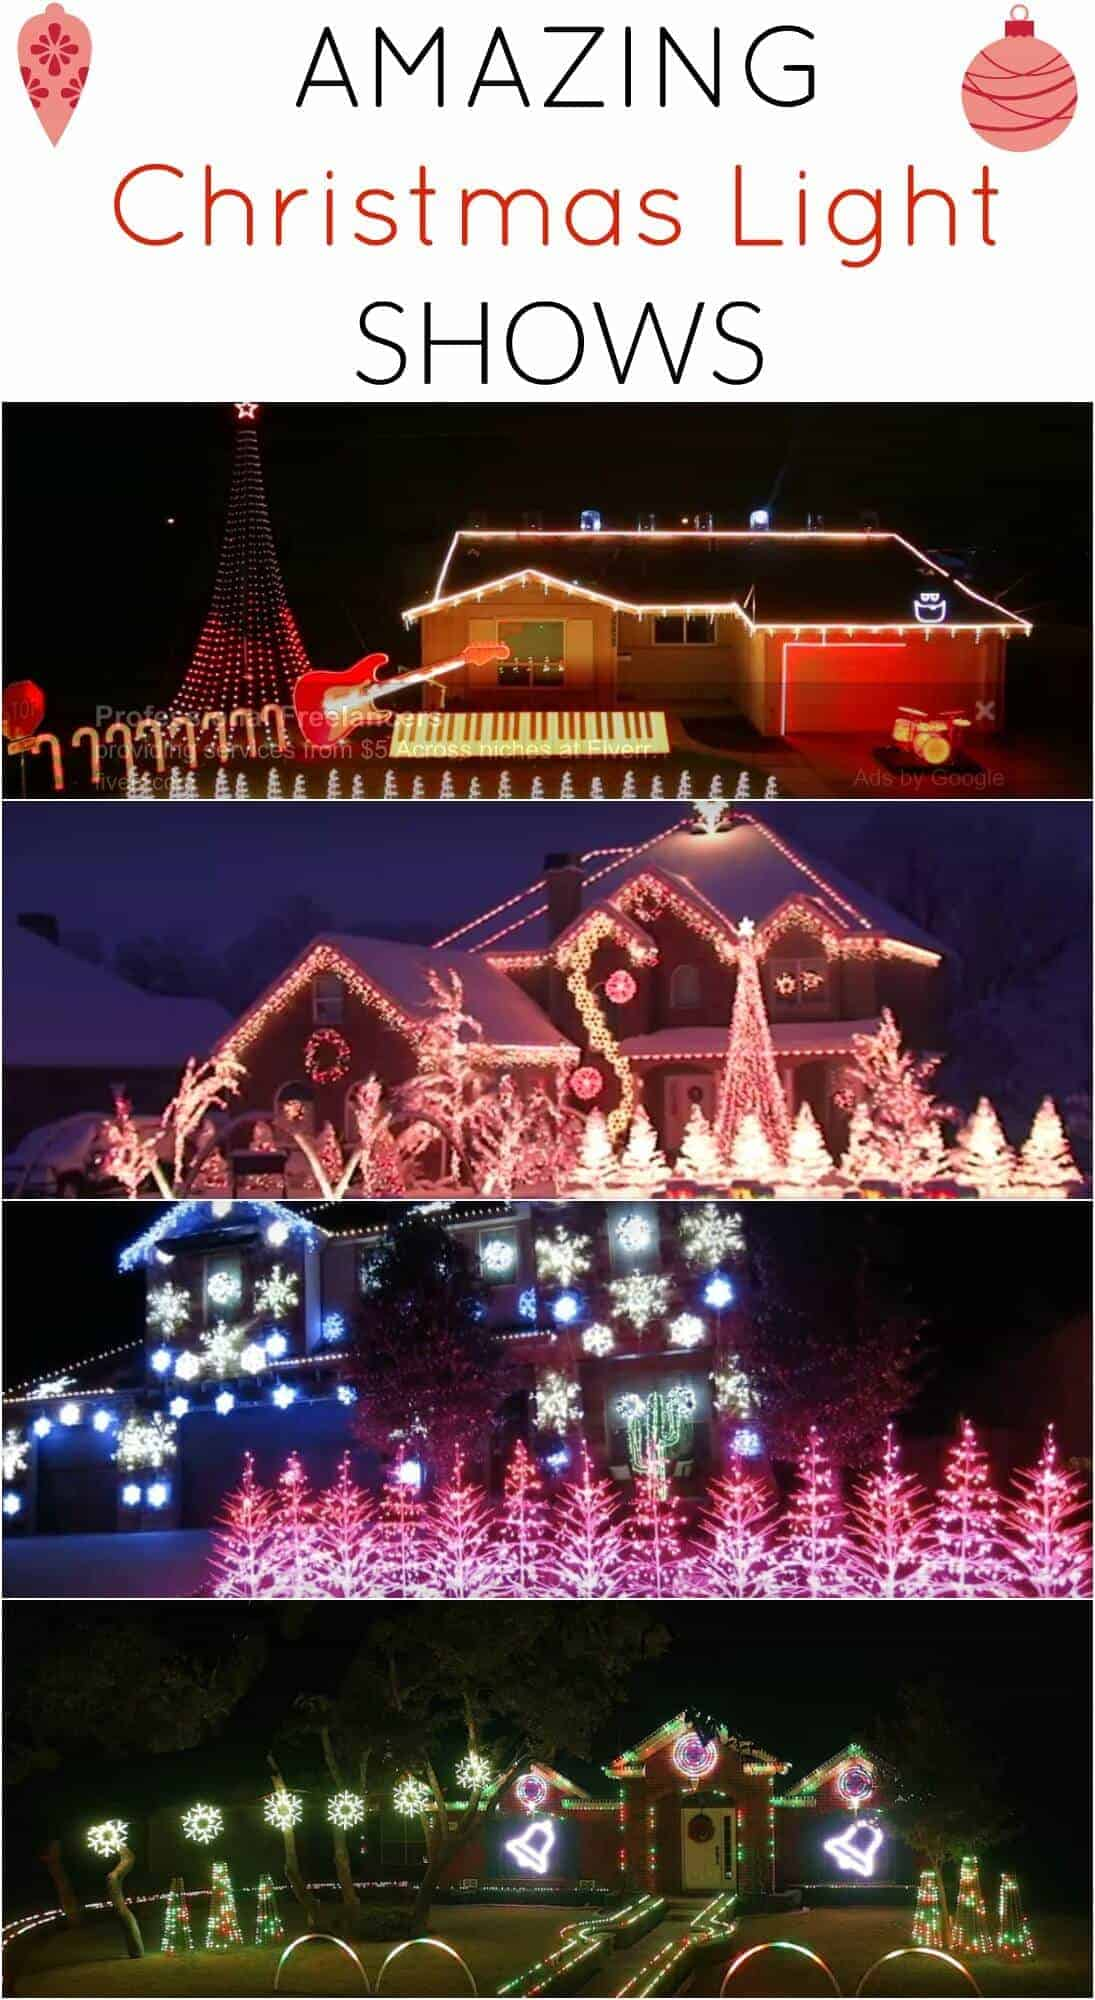 Amazing Christmas Light Shows - can you believe what these families accomplished! Amazing!